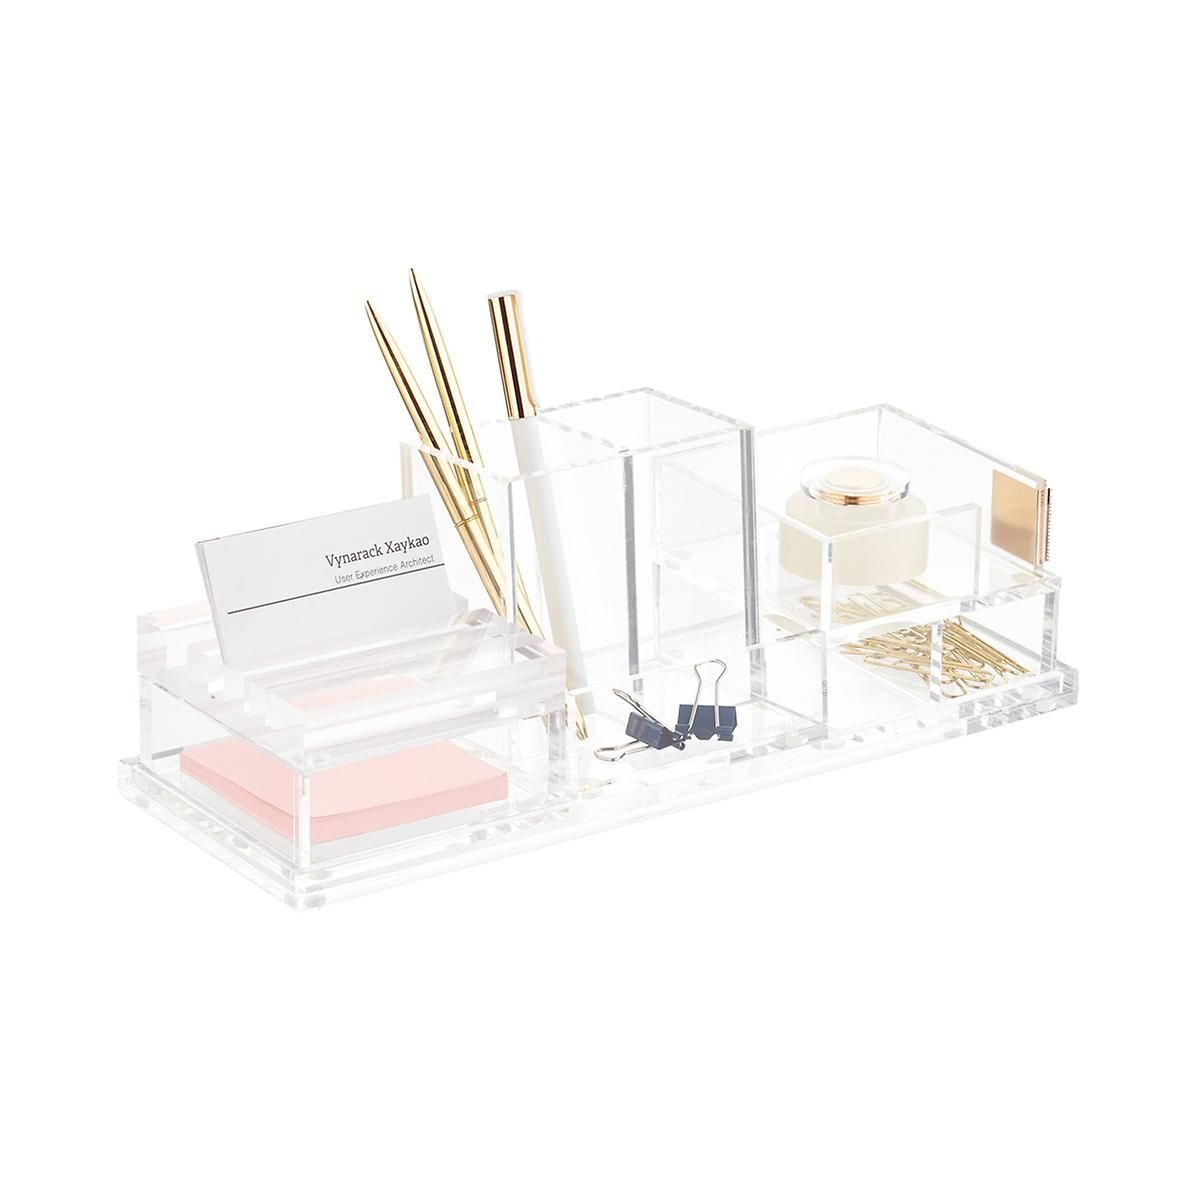 Russell Hazel Acrylic Bloc Collection System Acrylic Desk